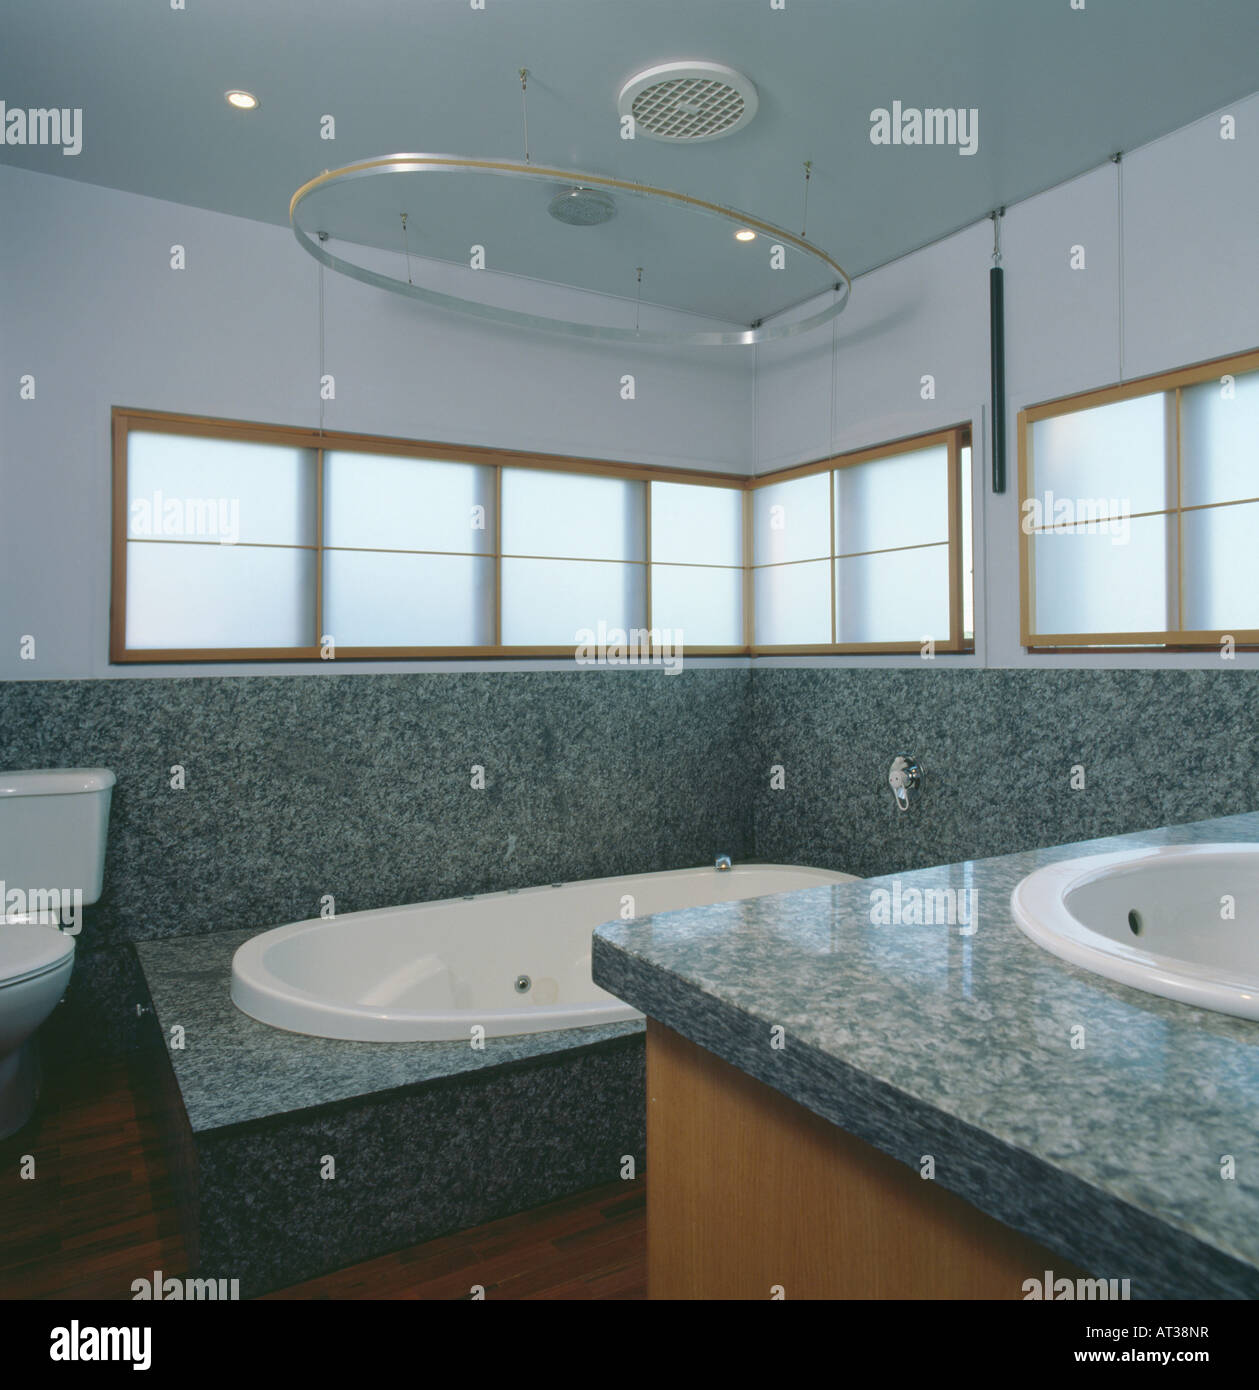 Grey Granite Walls To Dado Height In Modern Bathroom With White Blinds On  Narrow Windows